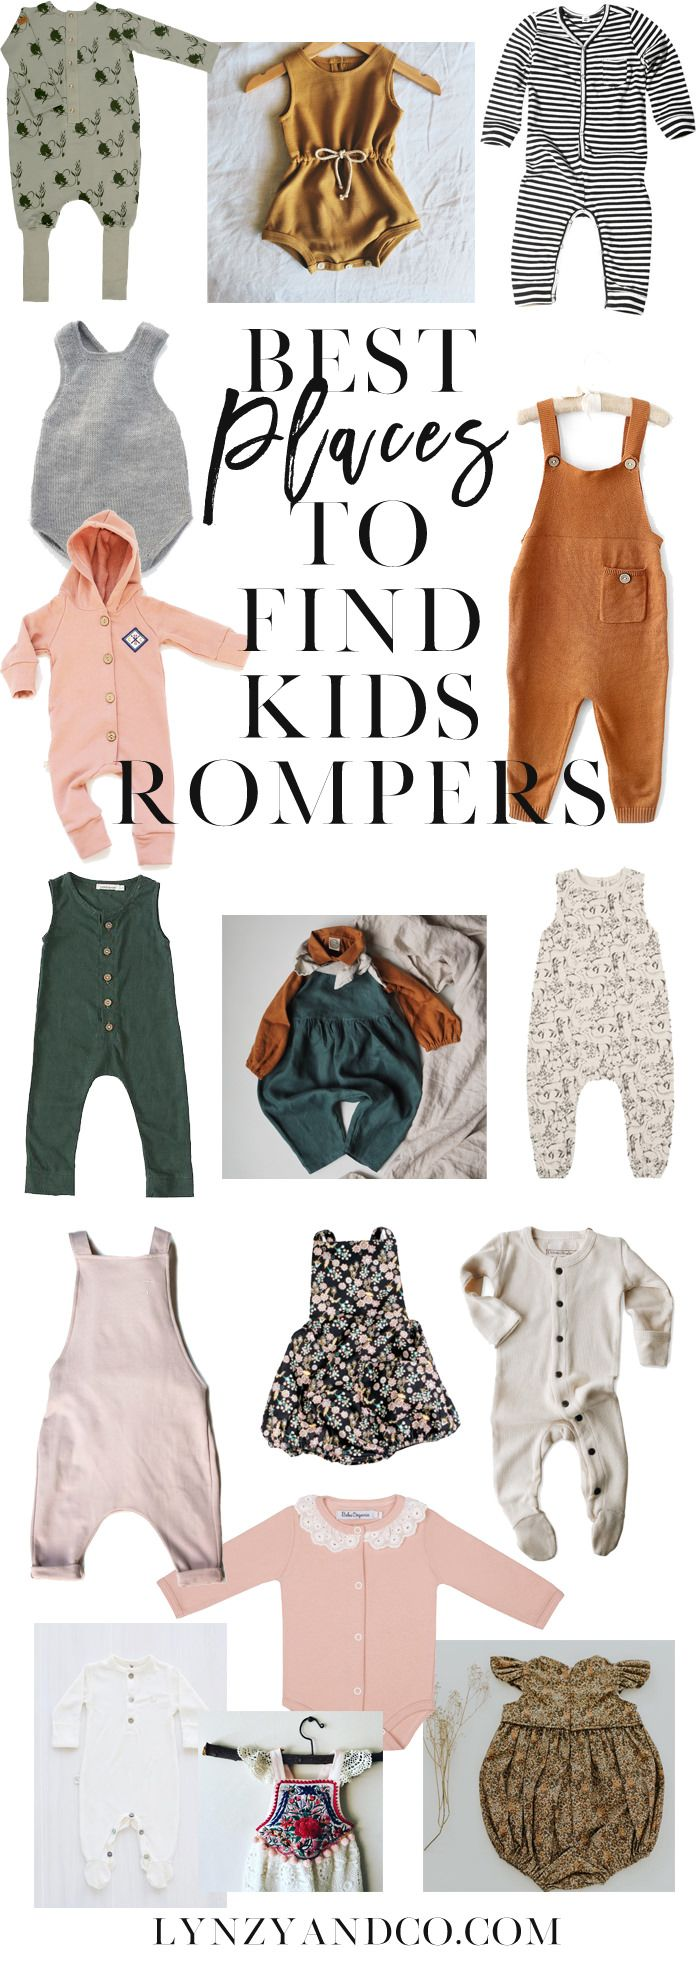 Best Baby Clothes Brands Amusing Where To Buy The Best Kid's Rompers  Kids S Kids Rompers And Kids Decorating Inspiration